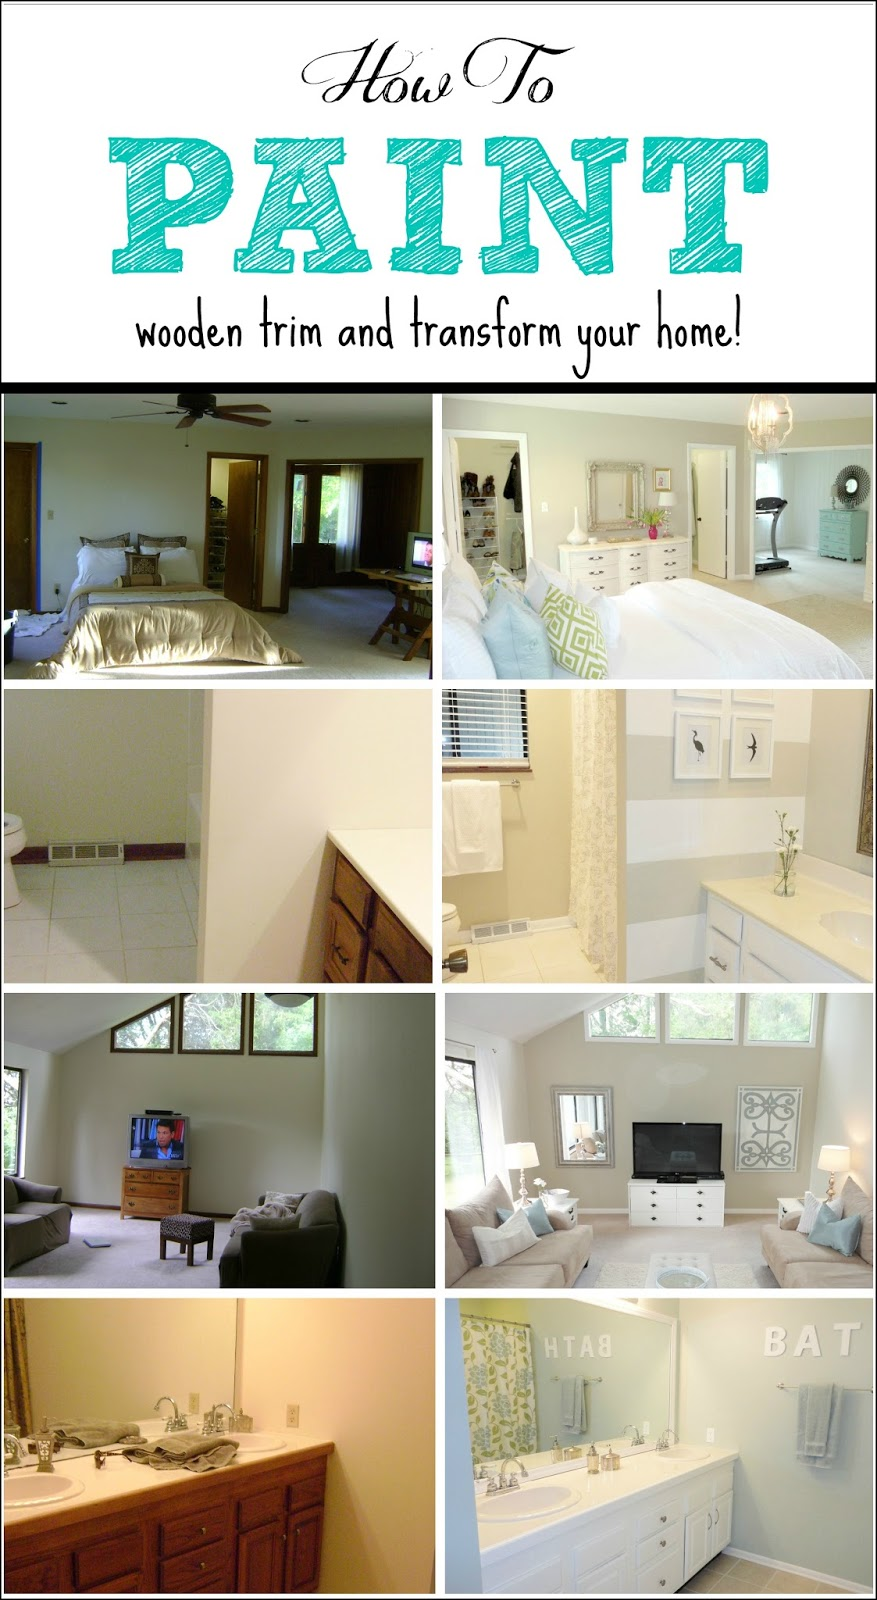 Sire Design Daily 10 Home Improvement Ideas How To Make